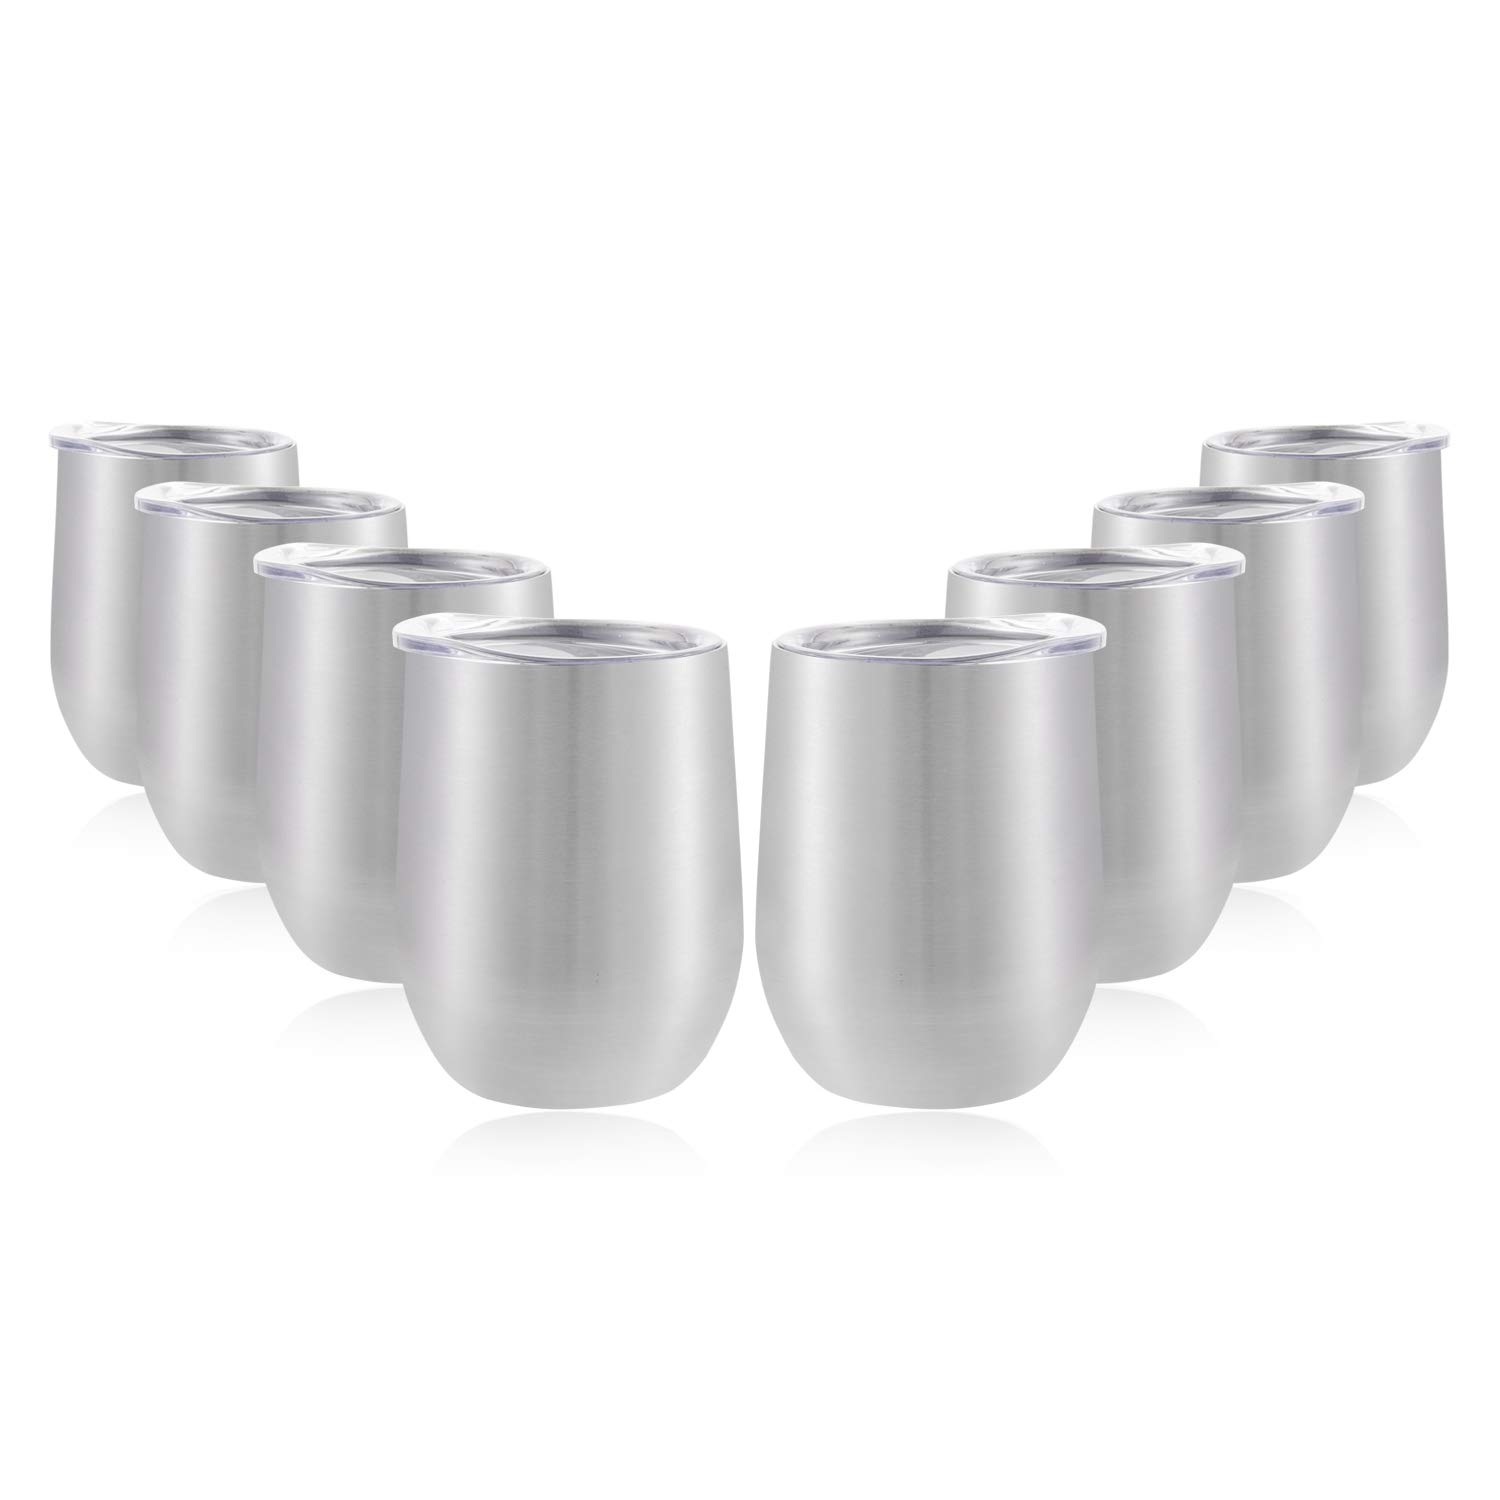 DOMICARE Insulated Wine Tumbler Glasses with Lid (8 Pack, Stainless Steel) - 12 OZ Stemless Double Wall Vacuum Traval Mug Cup - Keeping Cold & Hot for Wine, Coffee, Cocktails, Drinks